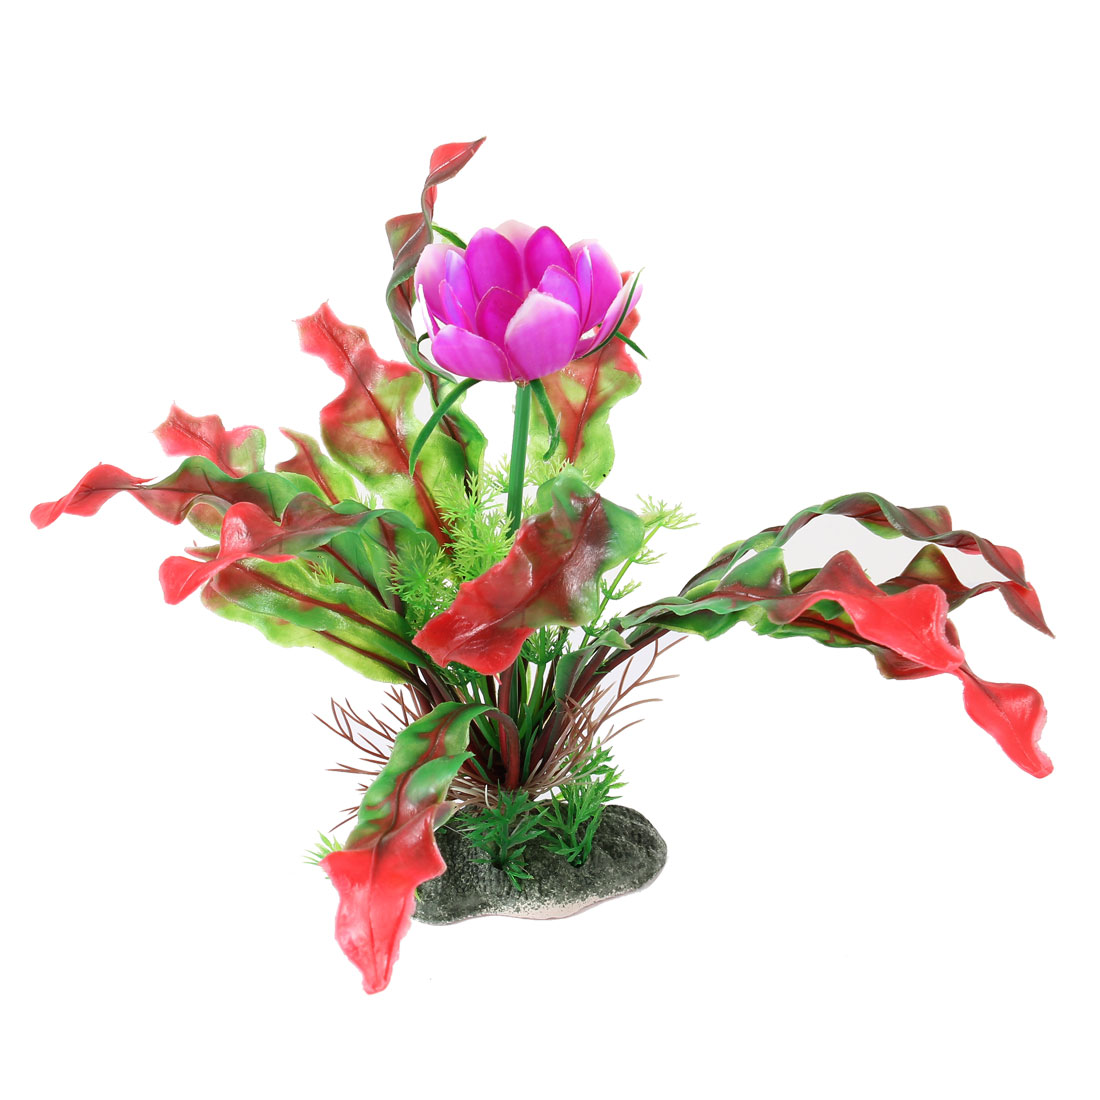 "Aquarium Fish Tank Ornament Landscaping Artificial Emulational Underwater Water Plant Grass Decor Green Red Purple 8.3"" Height"